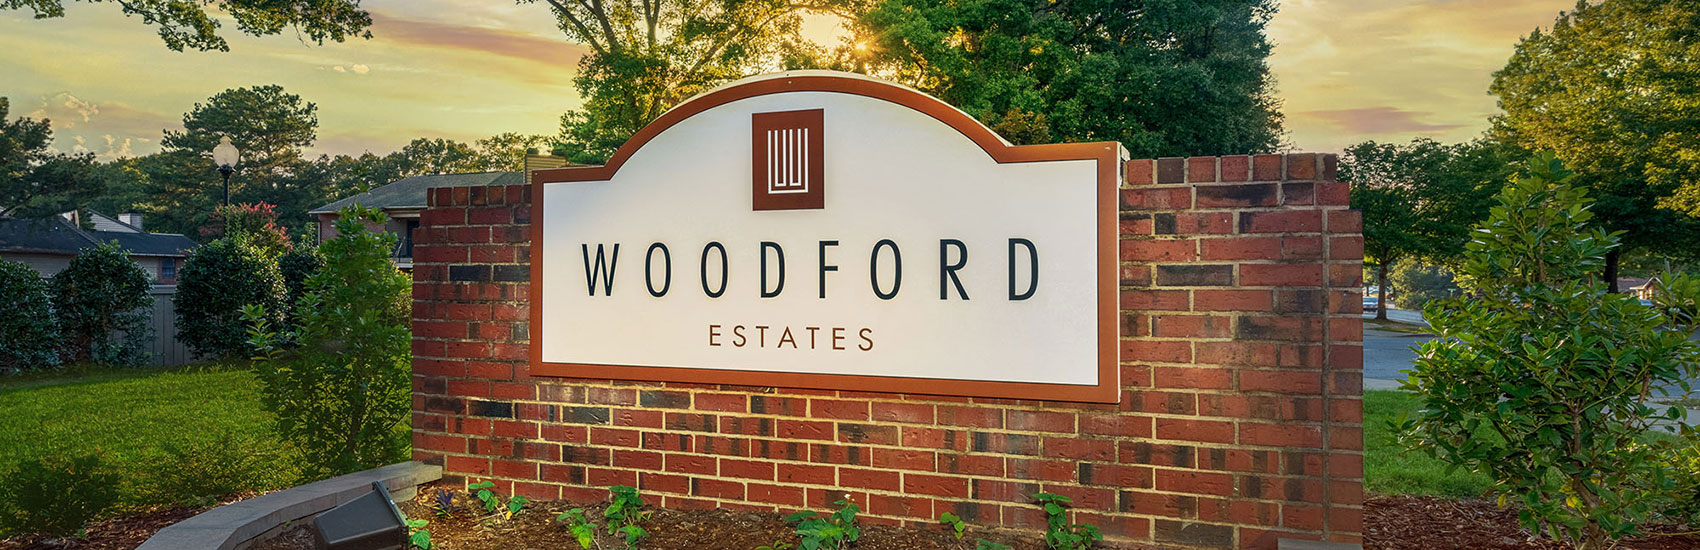 Woodford Estates Entrance